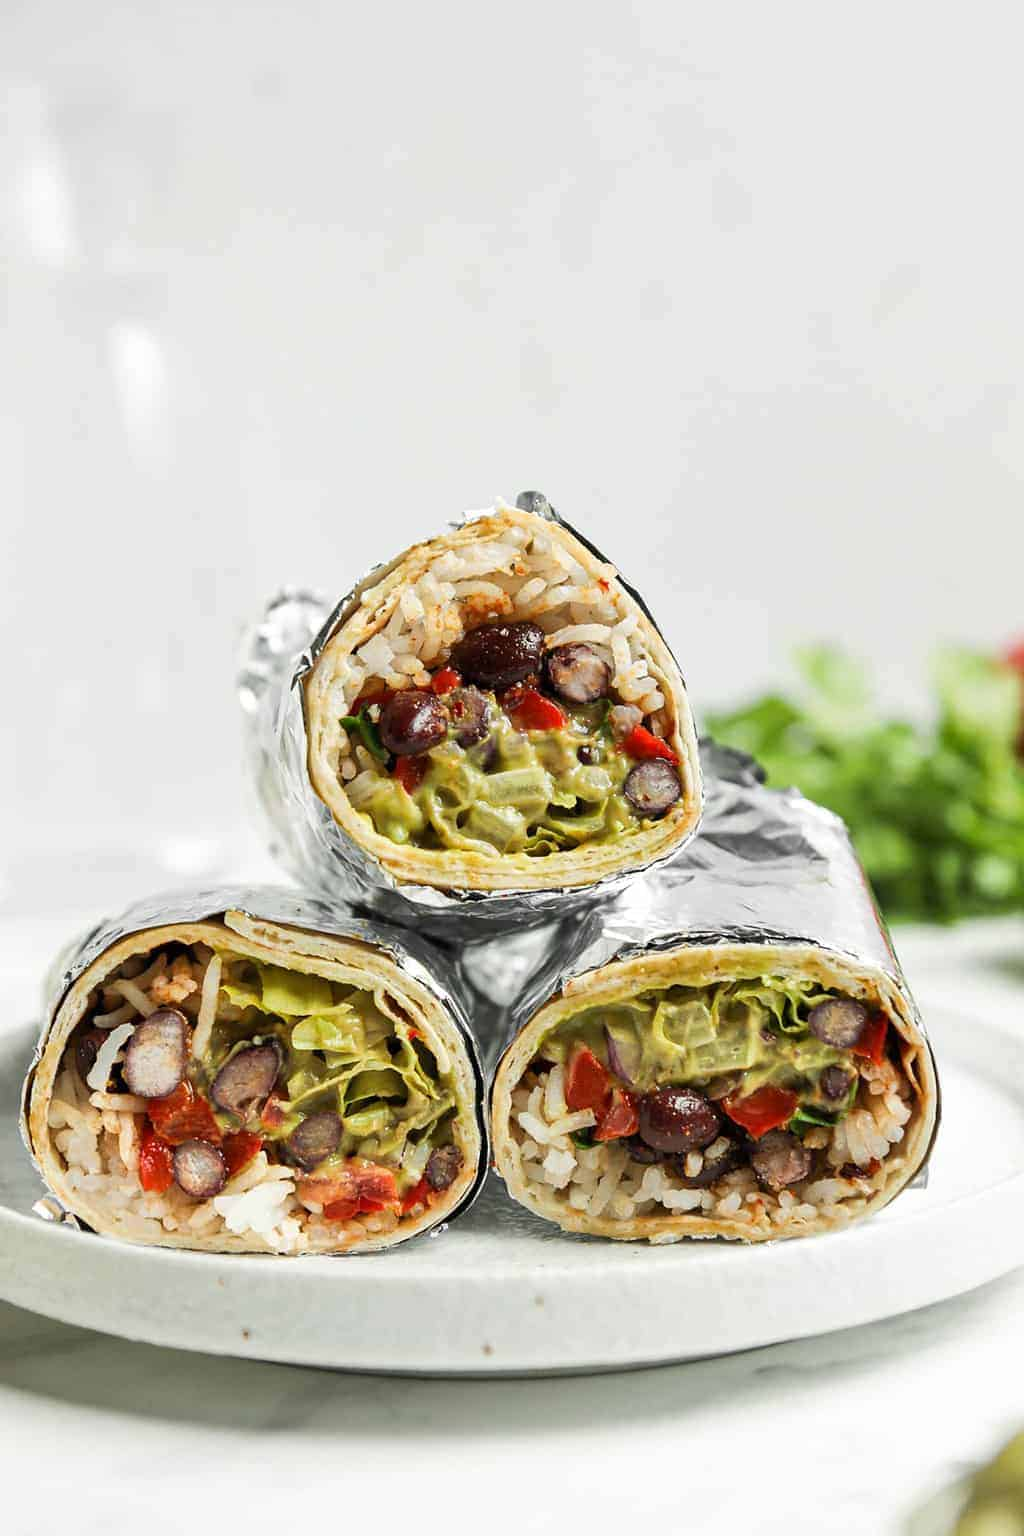 Three vegan burritos wrapped in foil and stacked on a white plate